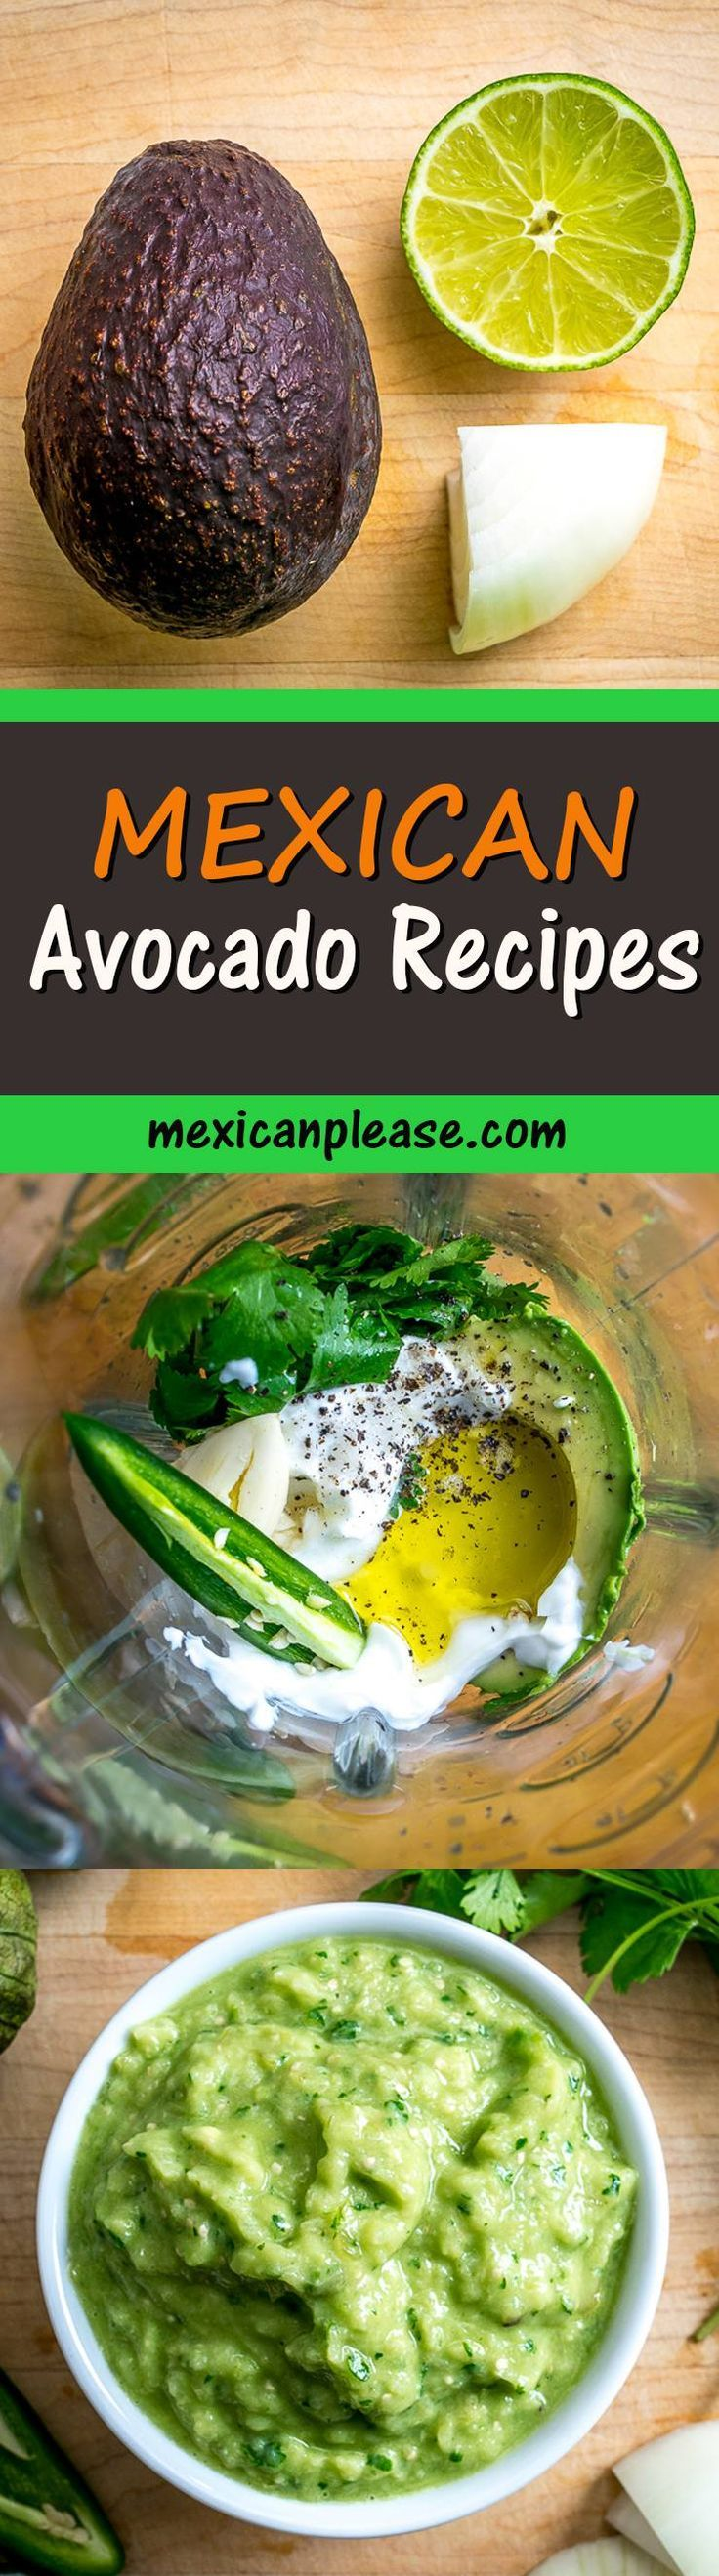 Here are some tips and recipes to get more avocados in your life!  Take a look at the Creamy Avocado Sauce and Avocado Salsa Verde as these are the ones I use the most.  mexicanplease.com